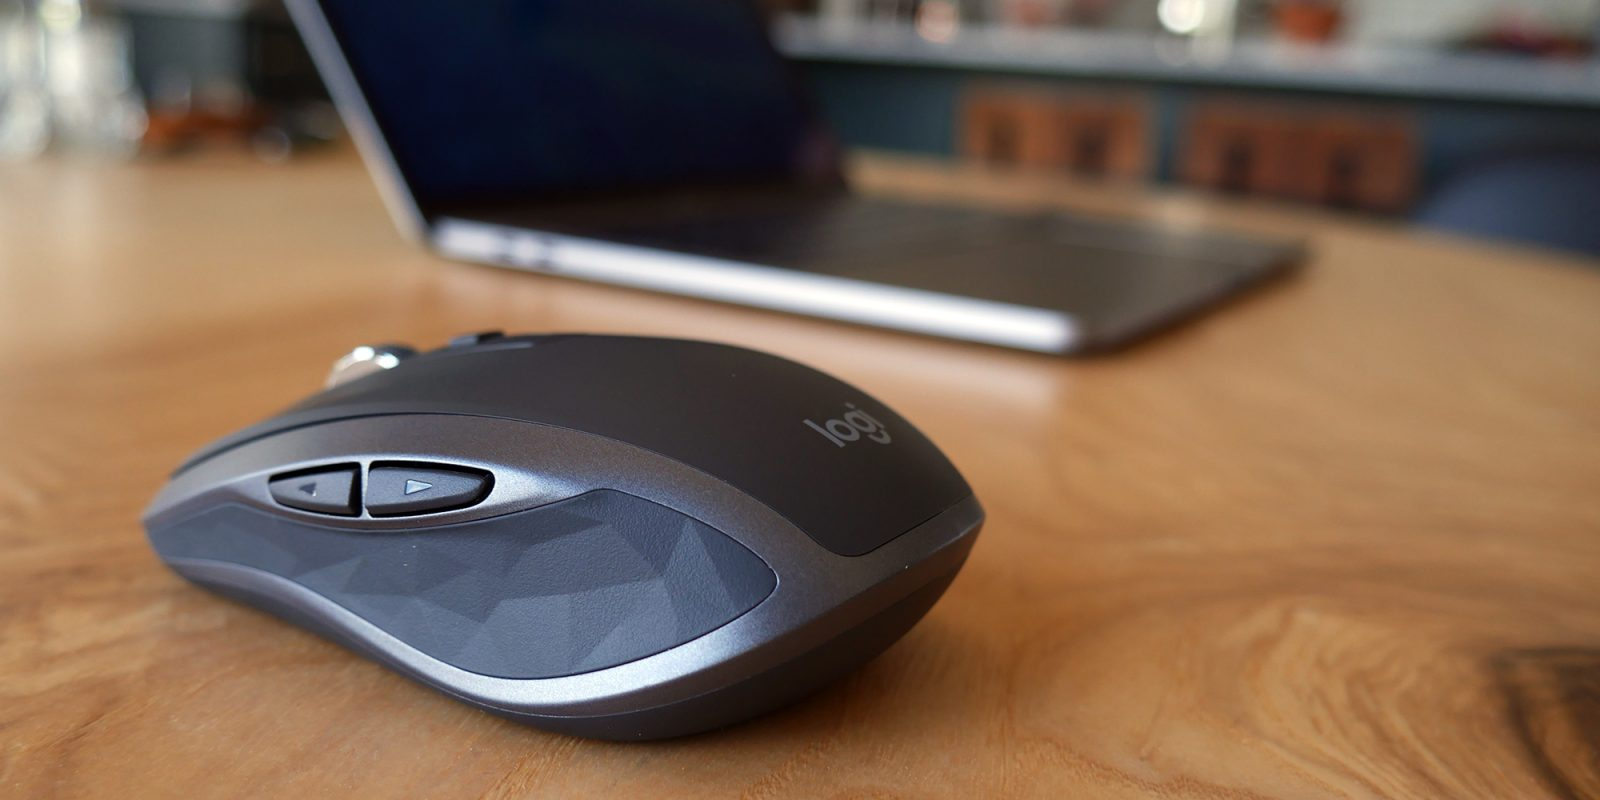 c16f7b6b107 Logitech's MX Anywhere 2S Wireless Mouse delivers productivity anywhere you  go for $44